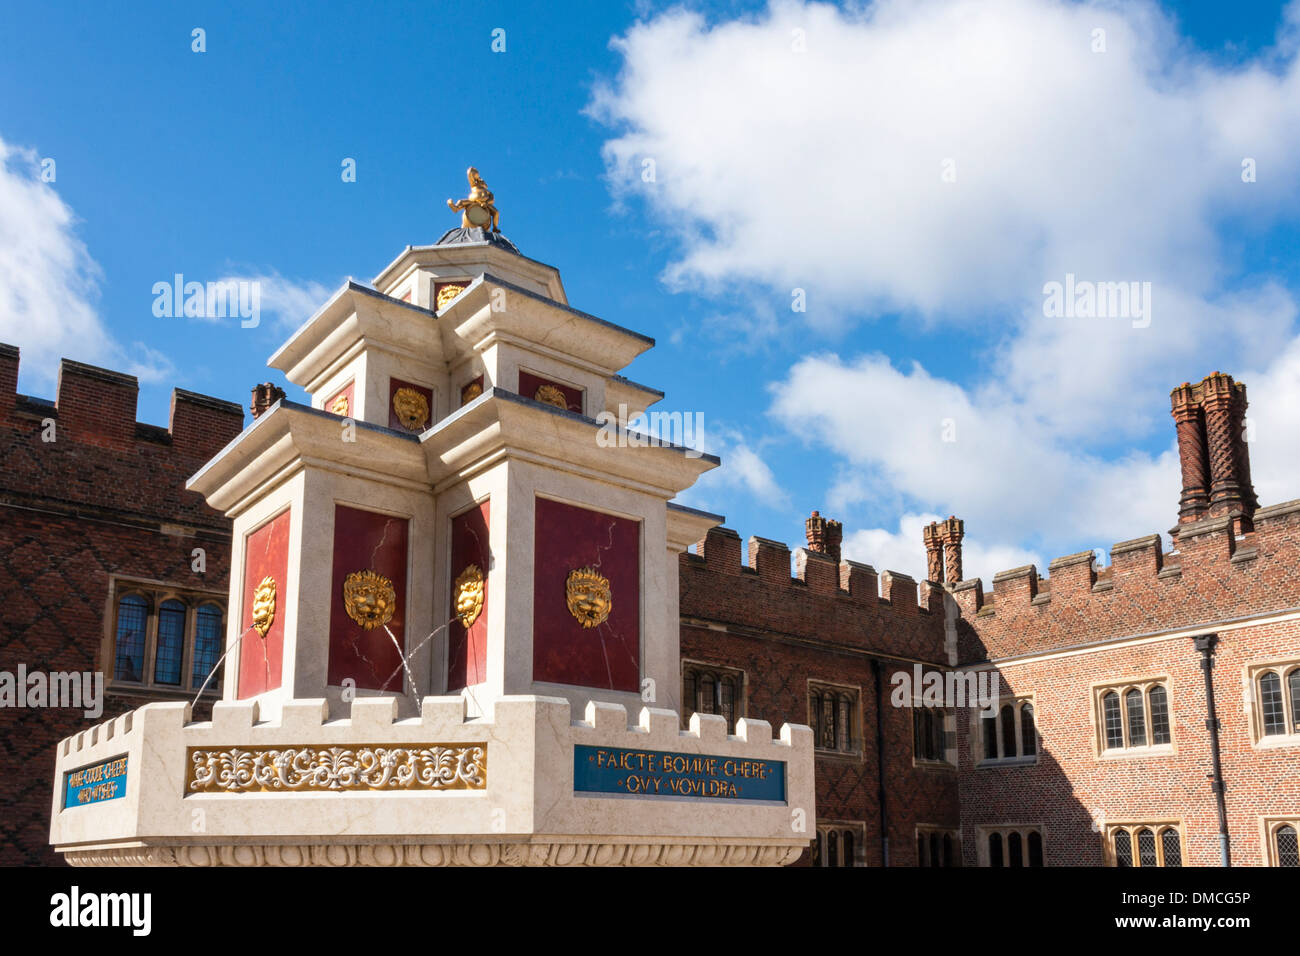 Recreation of Henry VIII wine fountain in Base Court at Hampton Court Palace. Stock Photo